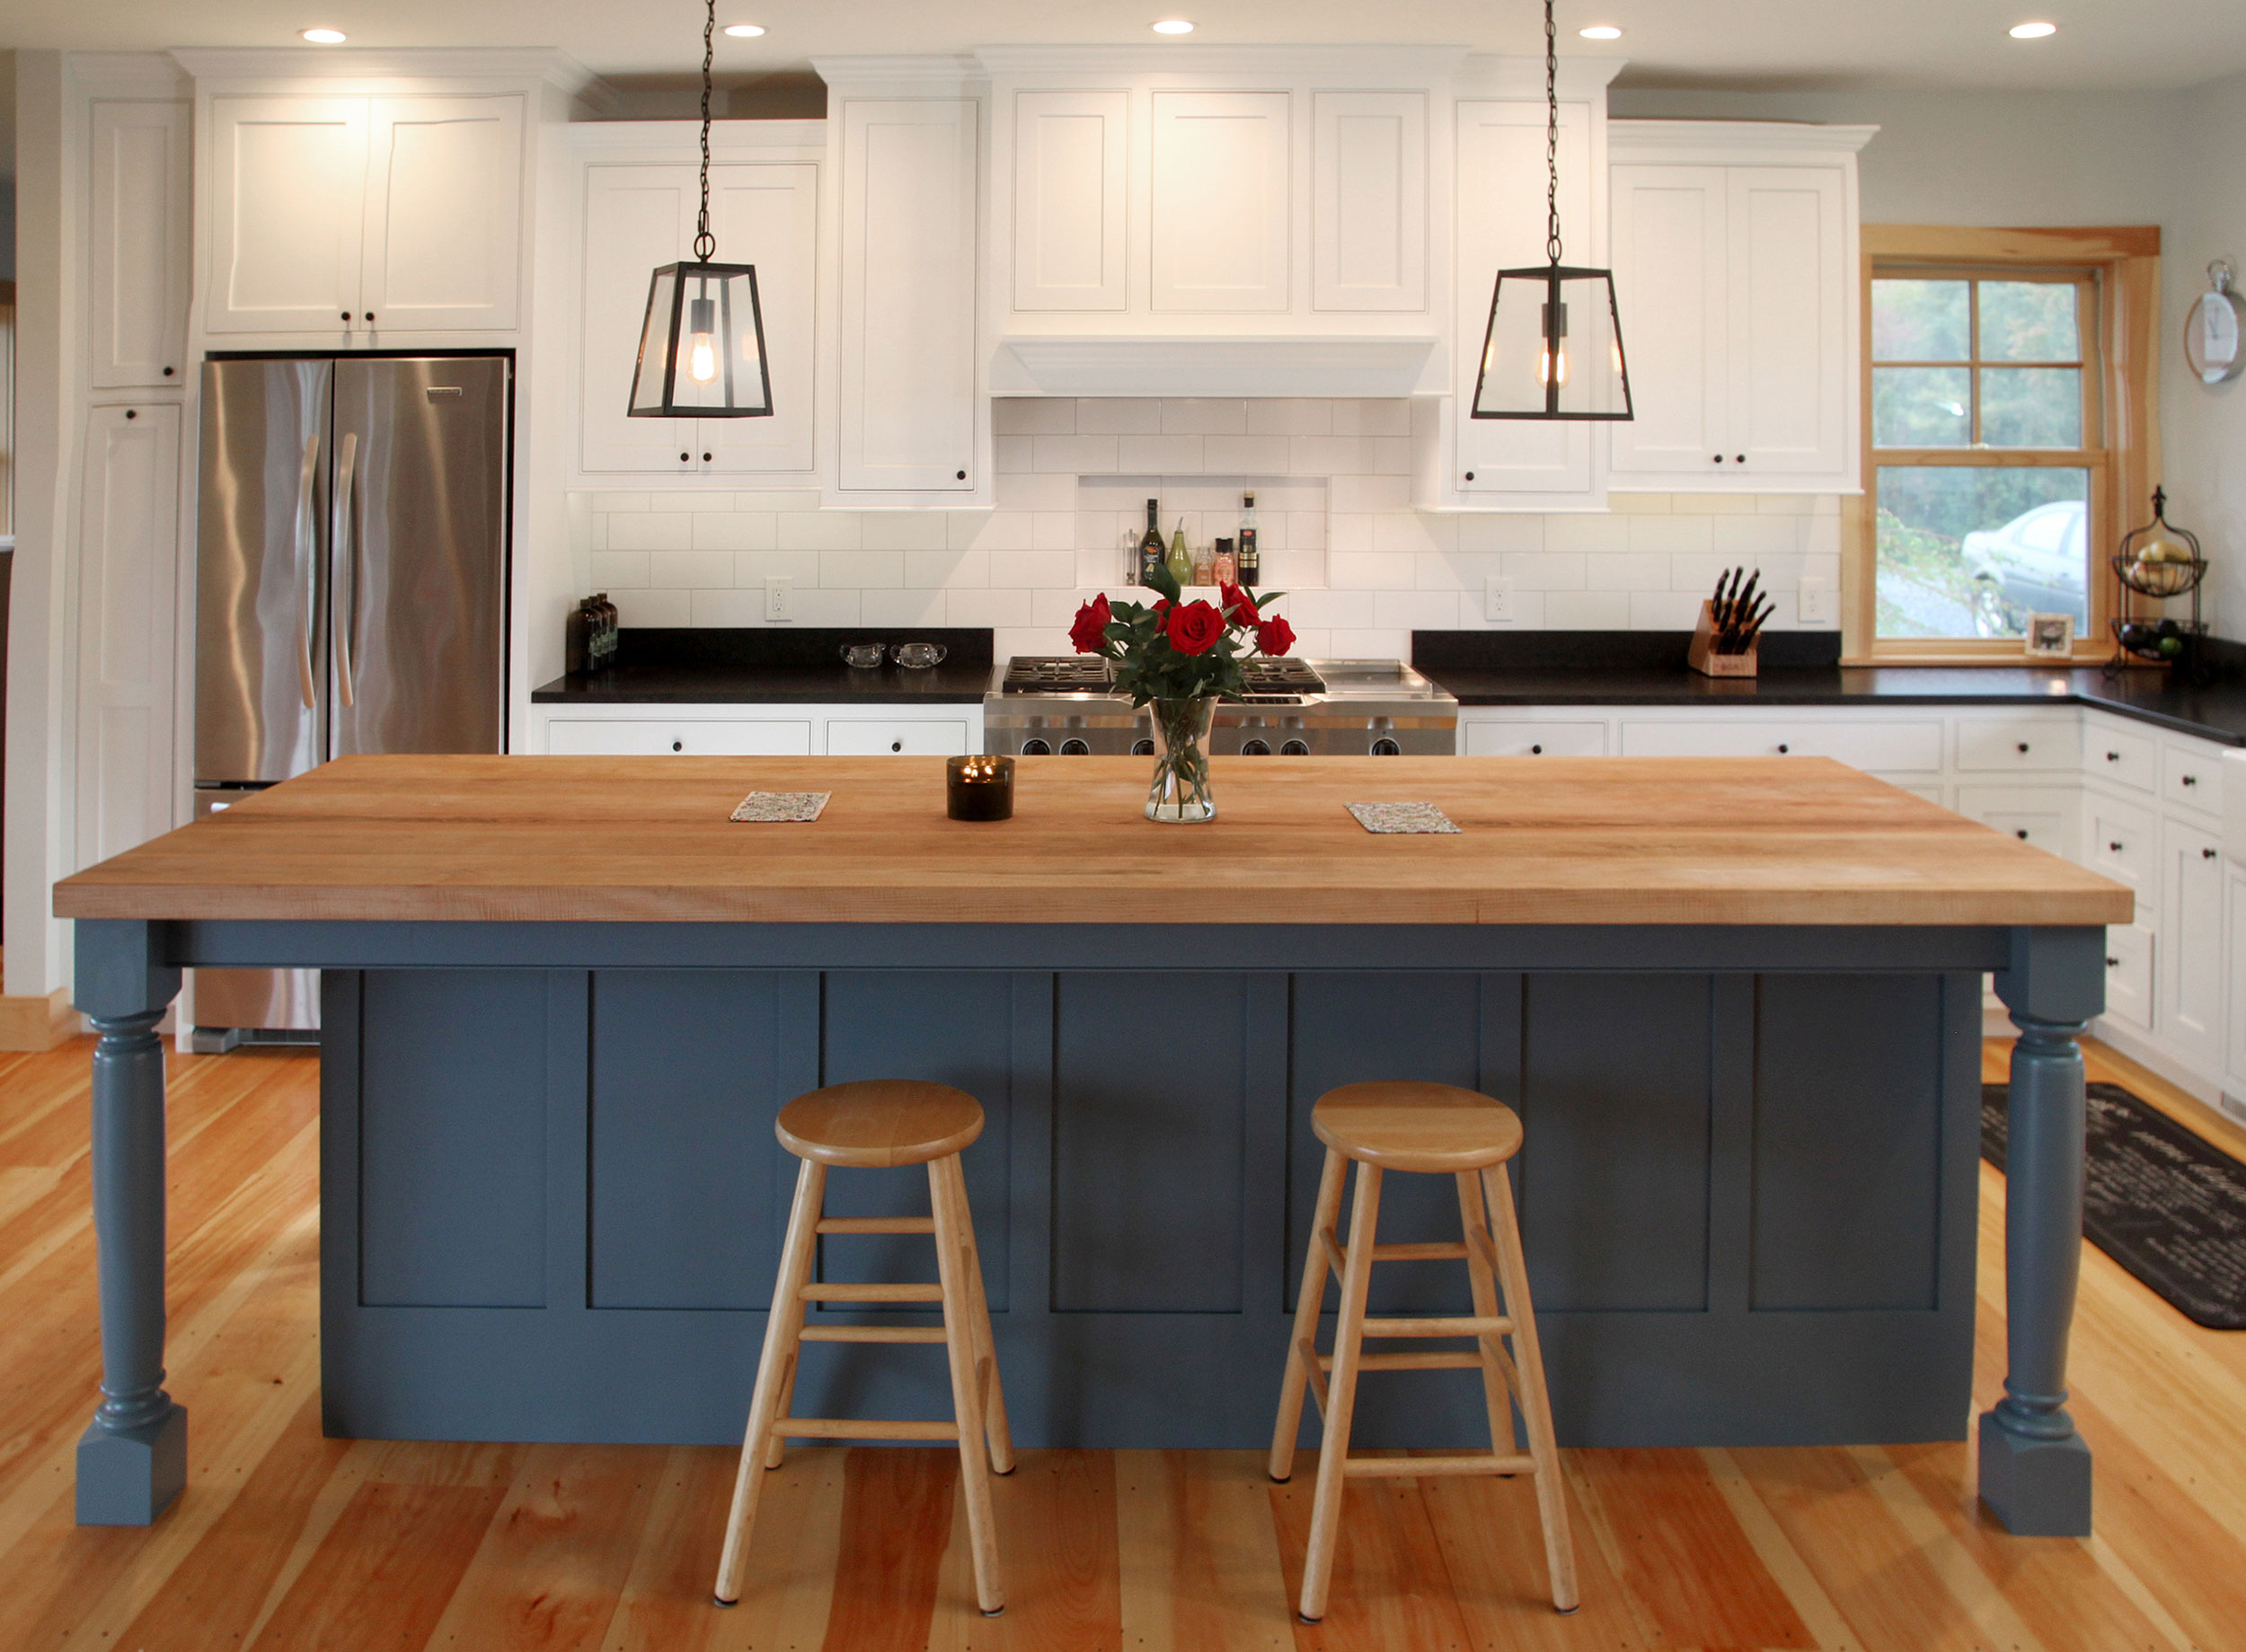 - Best New Kitchen Category Submitted by Simpson CabinetrySee more photos of this kitchen →